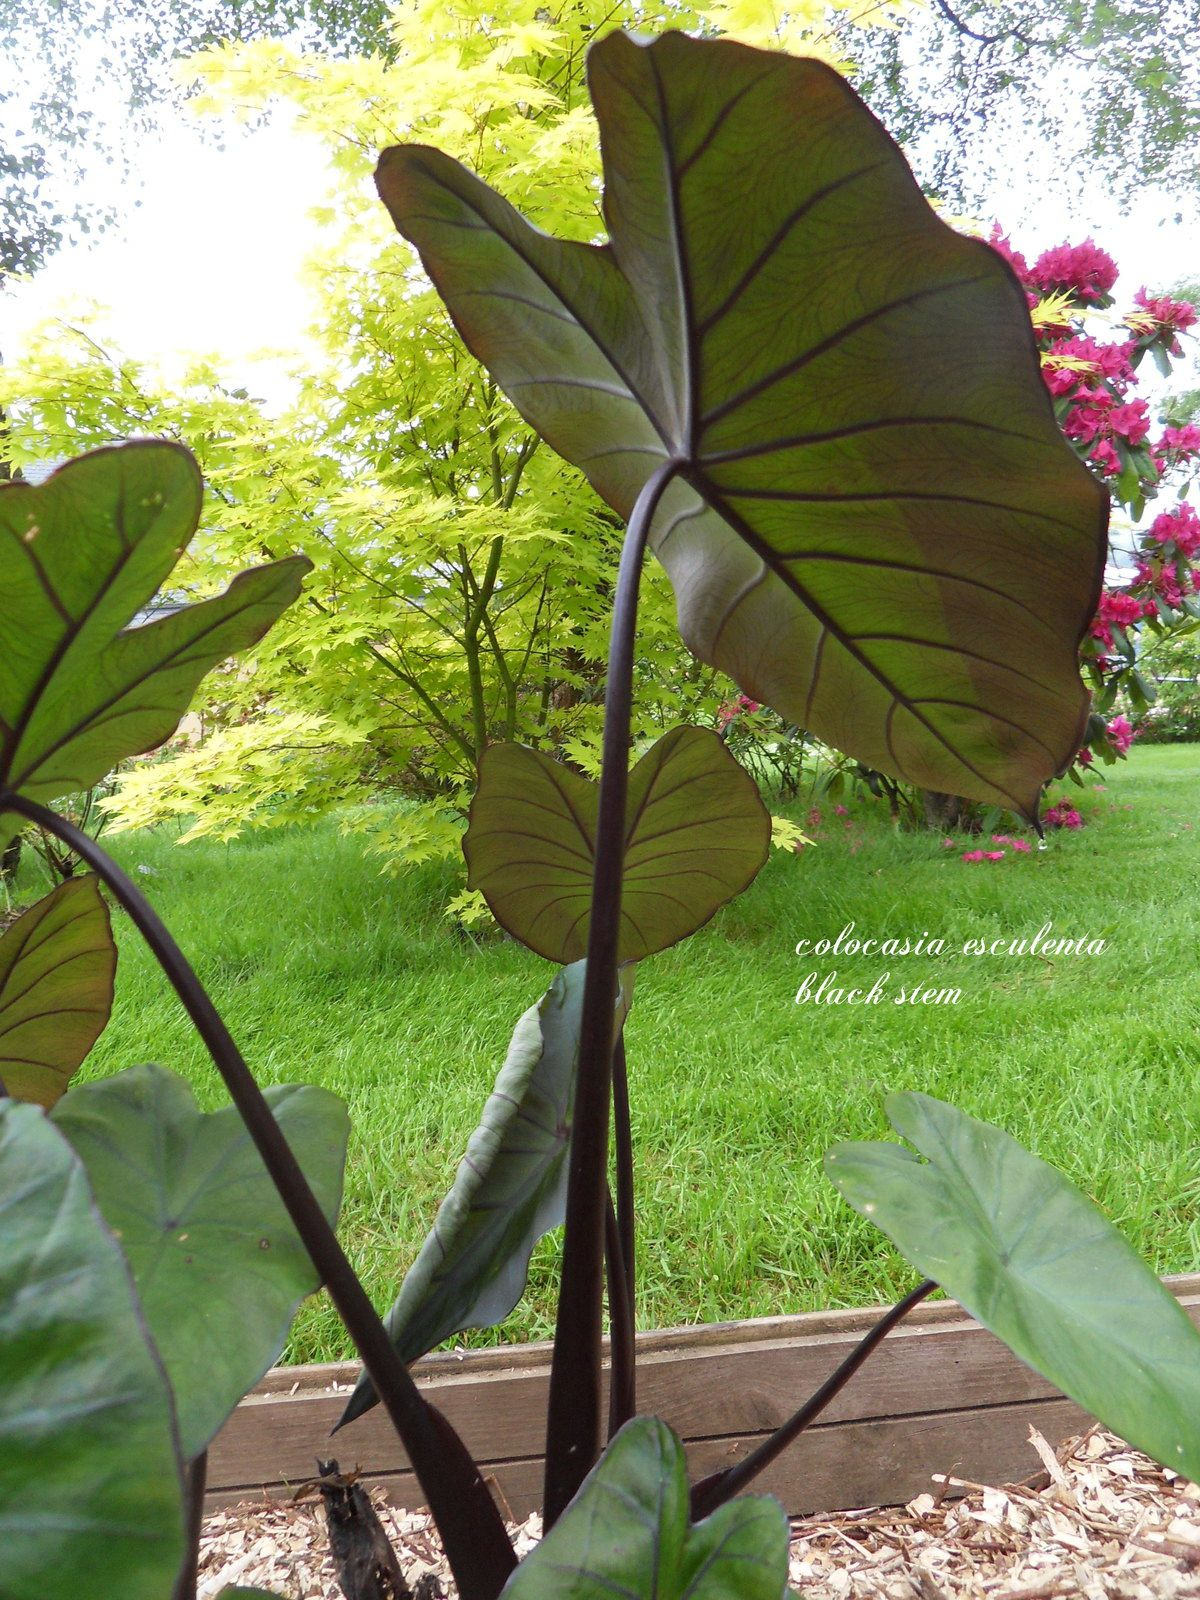 le colocasia esculenta black stem !!!!